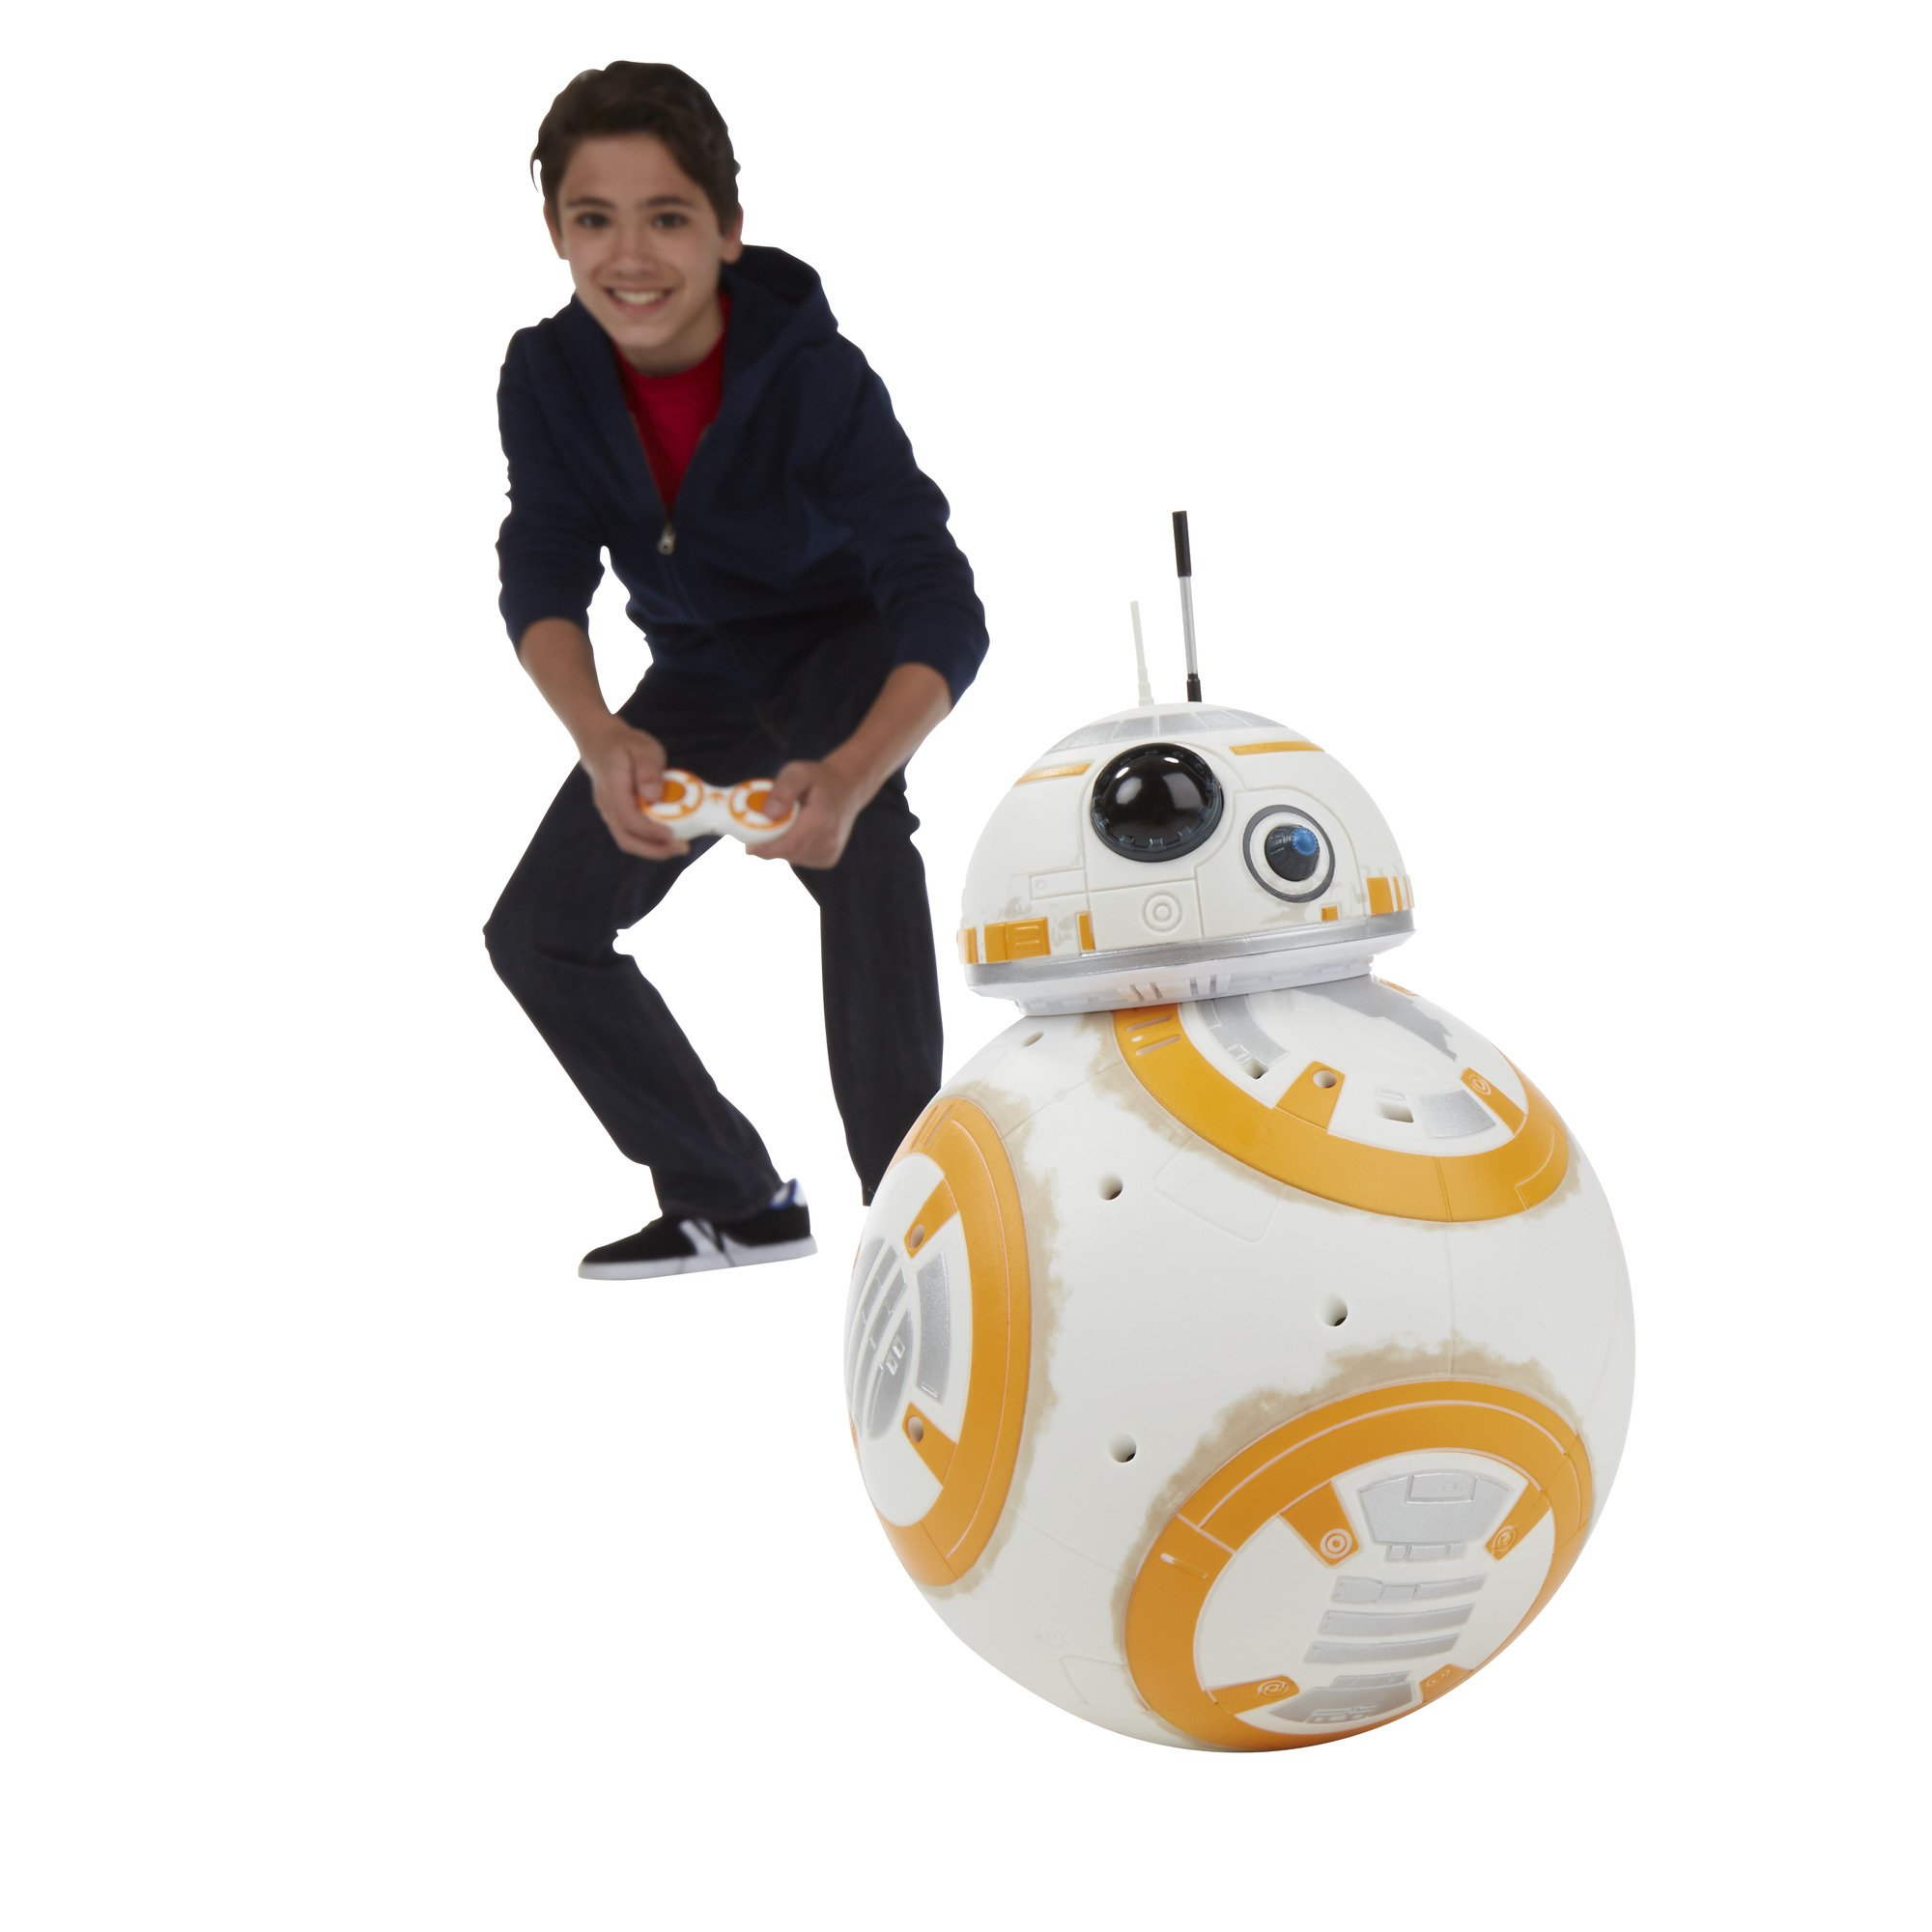 Star Wars The Force Awakens RC BB-8 by Star Wars (Image #7)